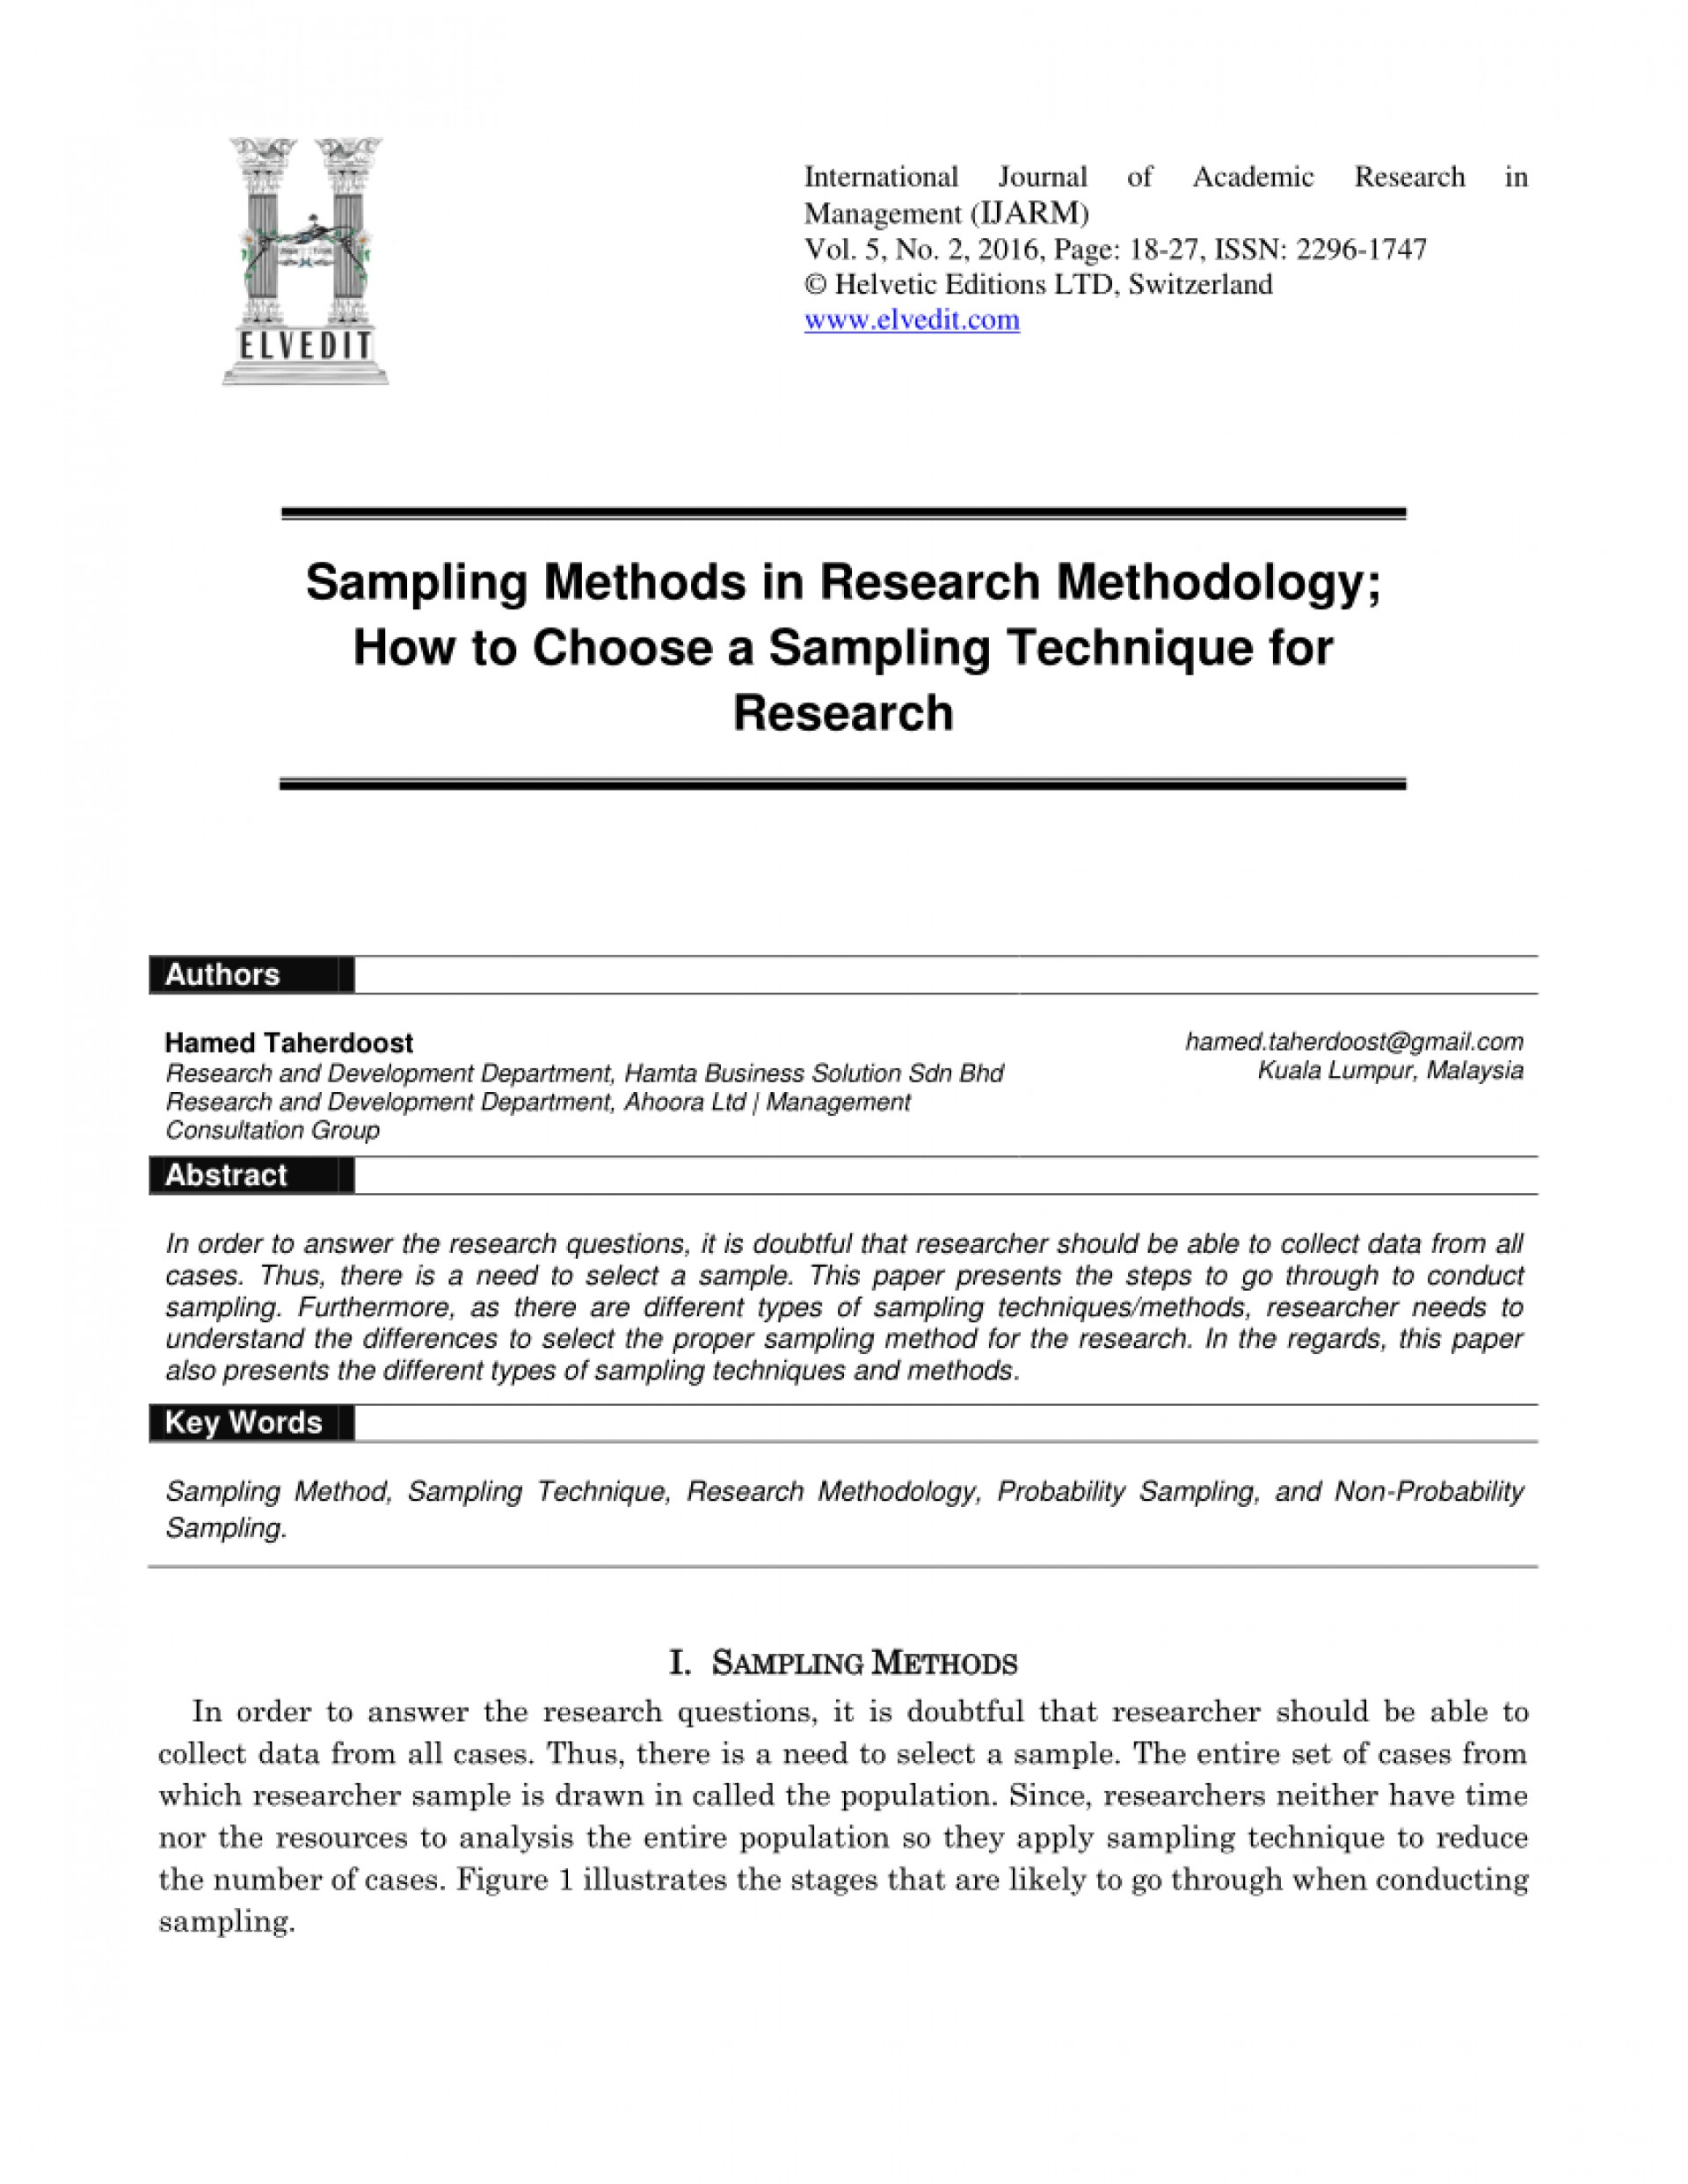 004 Research Paper Largepreview Methodology Sample Impressive For Writing Pdf 1920